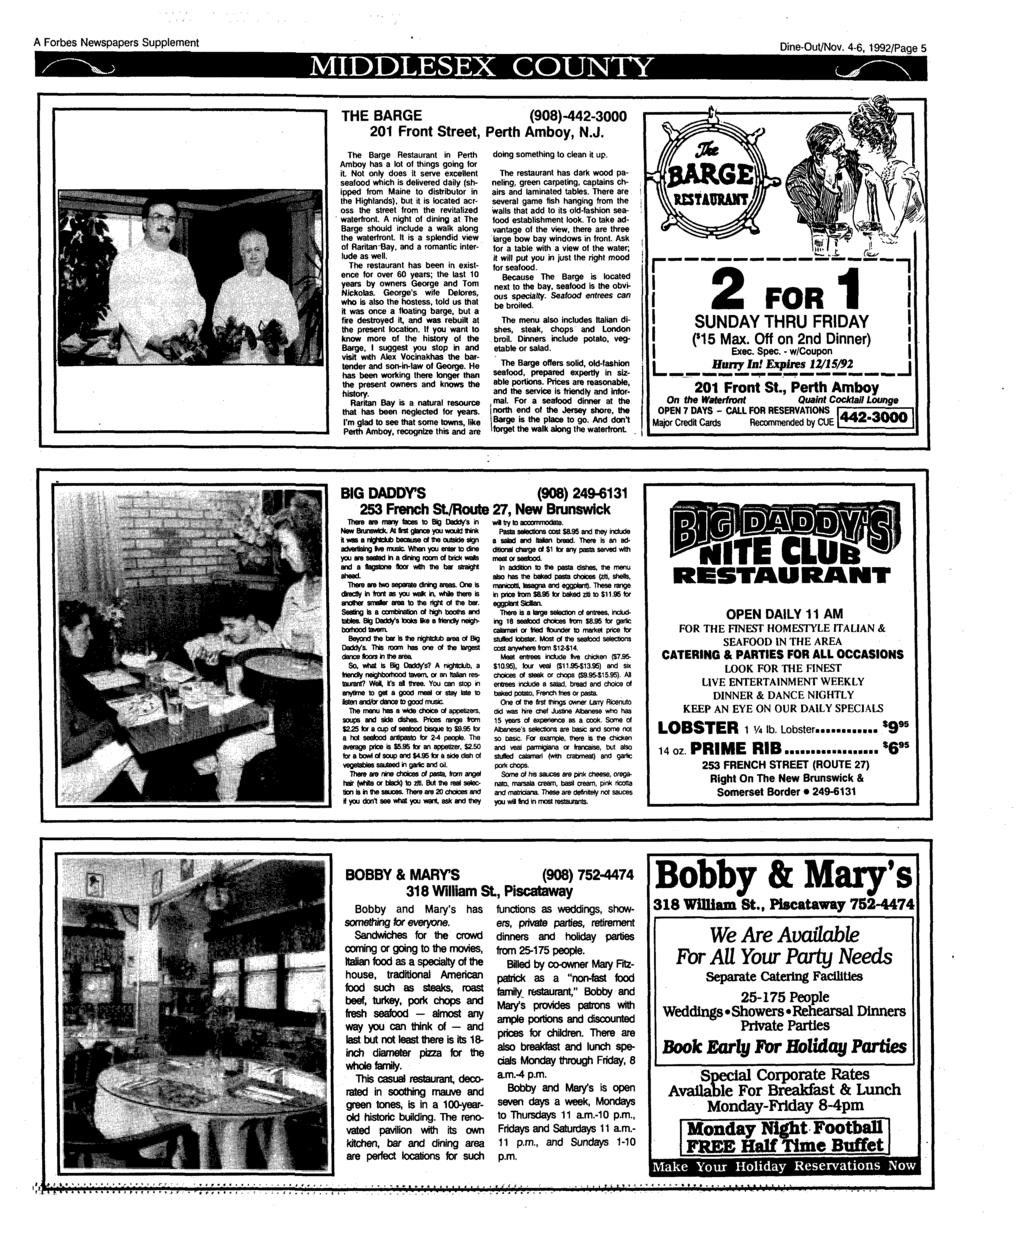 A Forbes Newspapers Supplement MIDDLESEX COUNTY Dine-Out/Nov. 4-6,1992/Page 5 THE BARGE (908)-442-3000 201 Front Street, Perth Amboy, N.J.